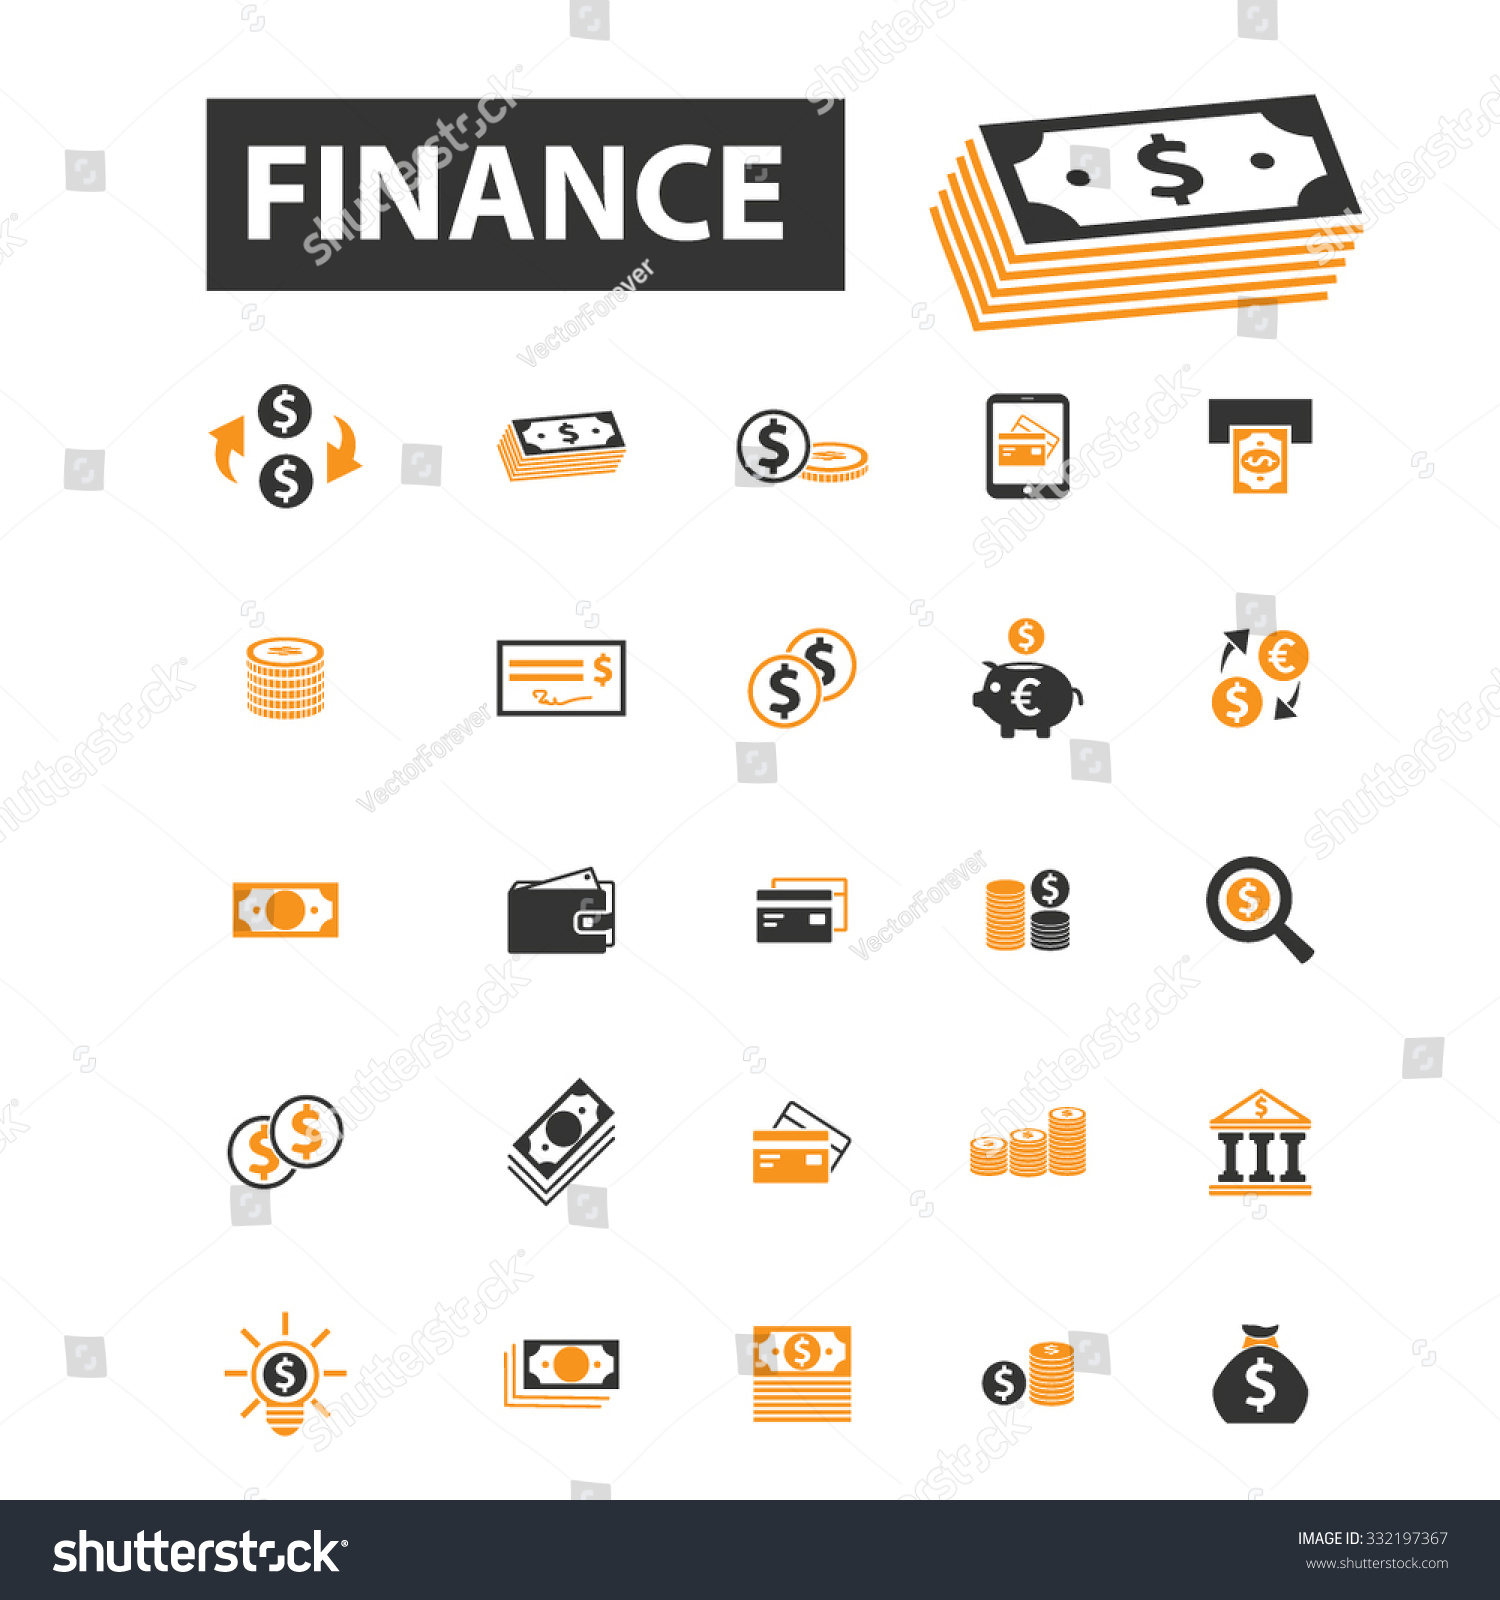 Finance Sign: Finance Bank Money Banknote Icon Sign Stock Vector